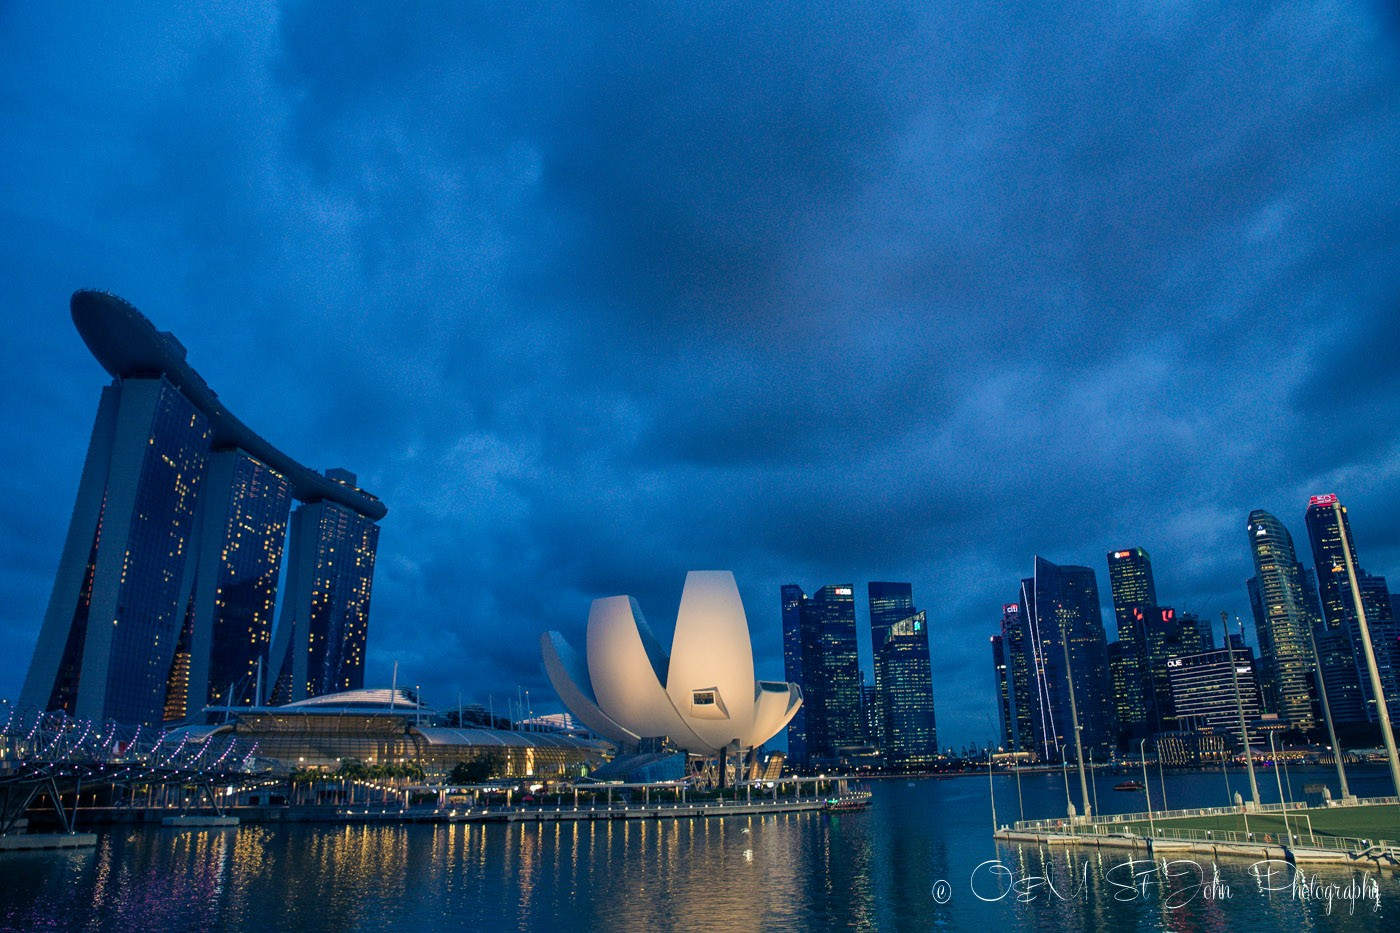 Stopover in Singapore: Singapore's Harbourfront. View from the Helix Bridge. Singapore on a budget